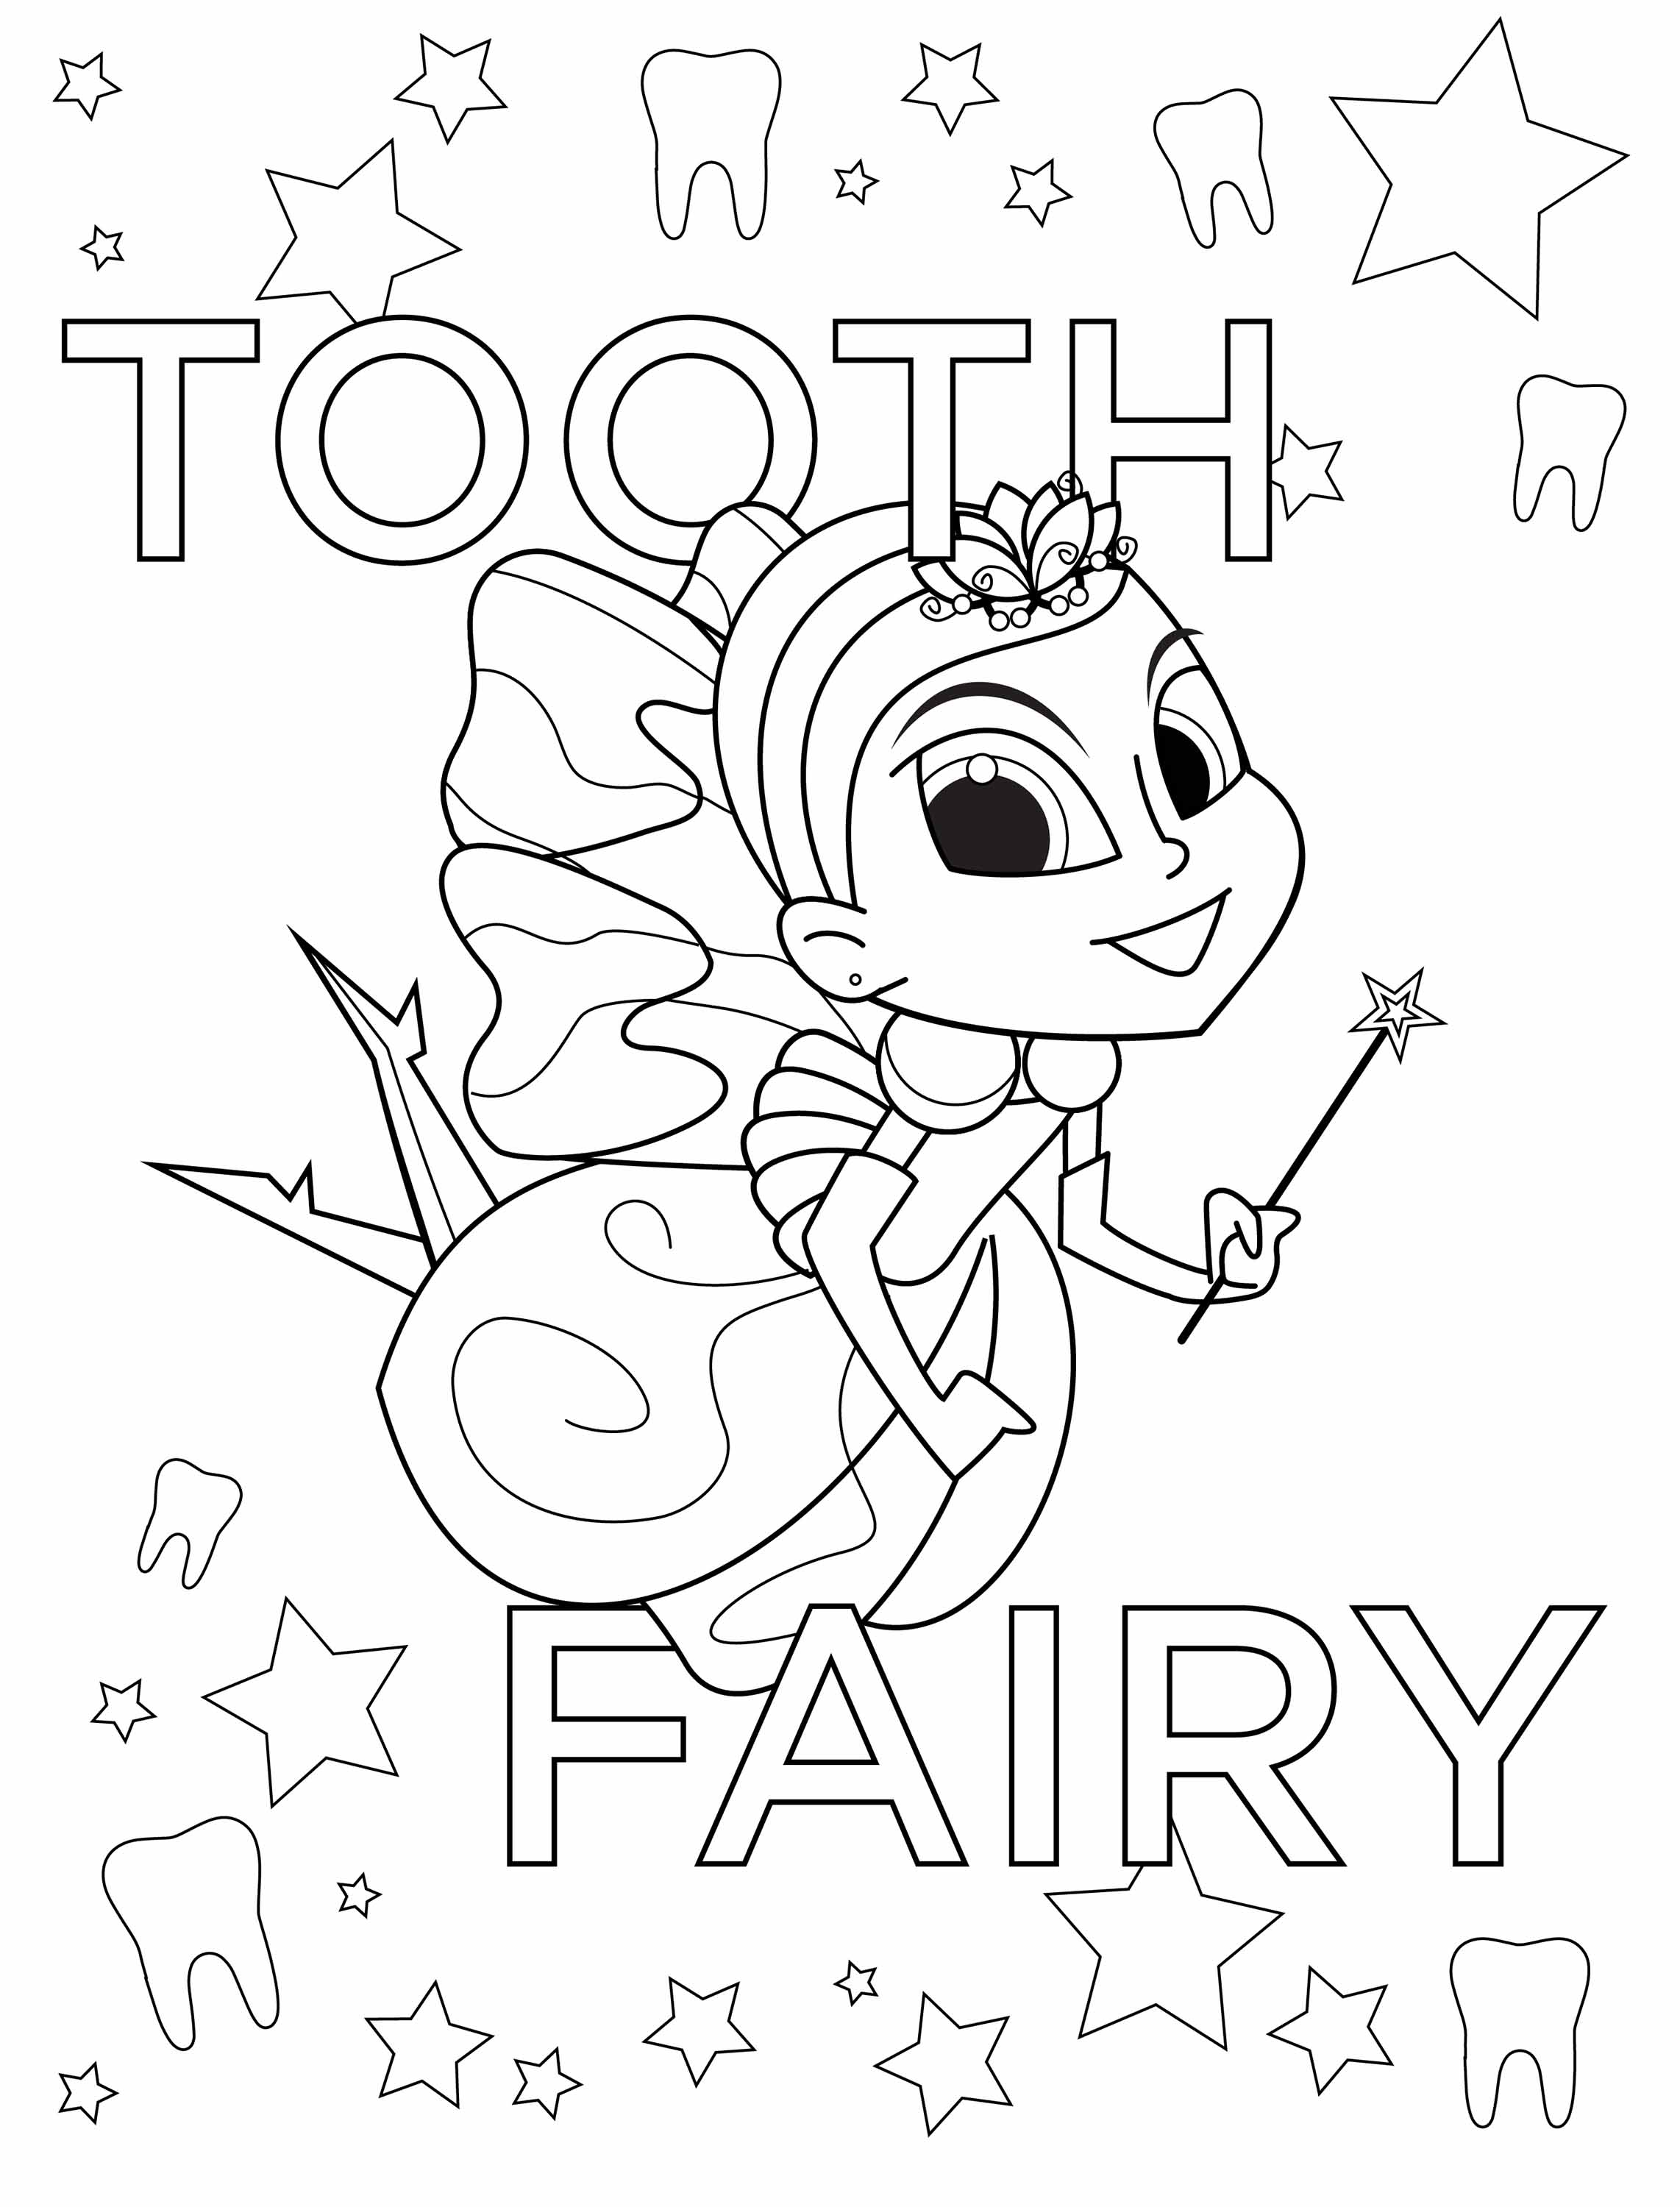 Outstanding Hermey Coloring Sheet 5 Kids Activity Sheets Collection Of Coloring Pages tooth Coloring Pages Unique Happy Brush Dental Page Gallery